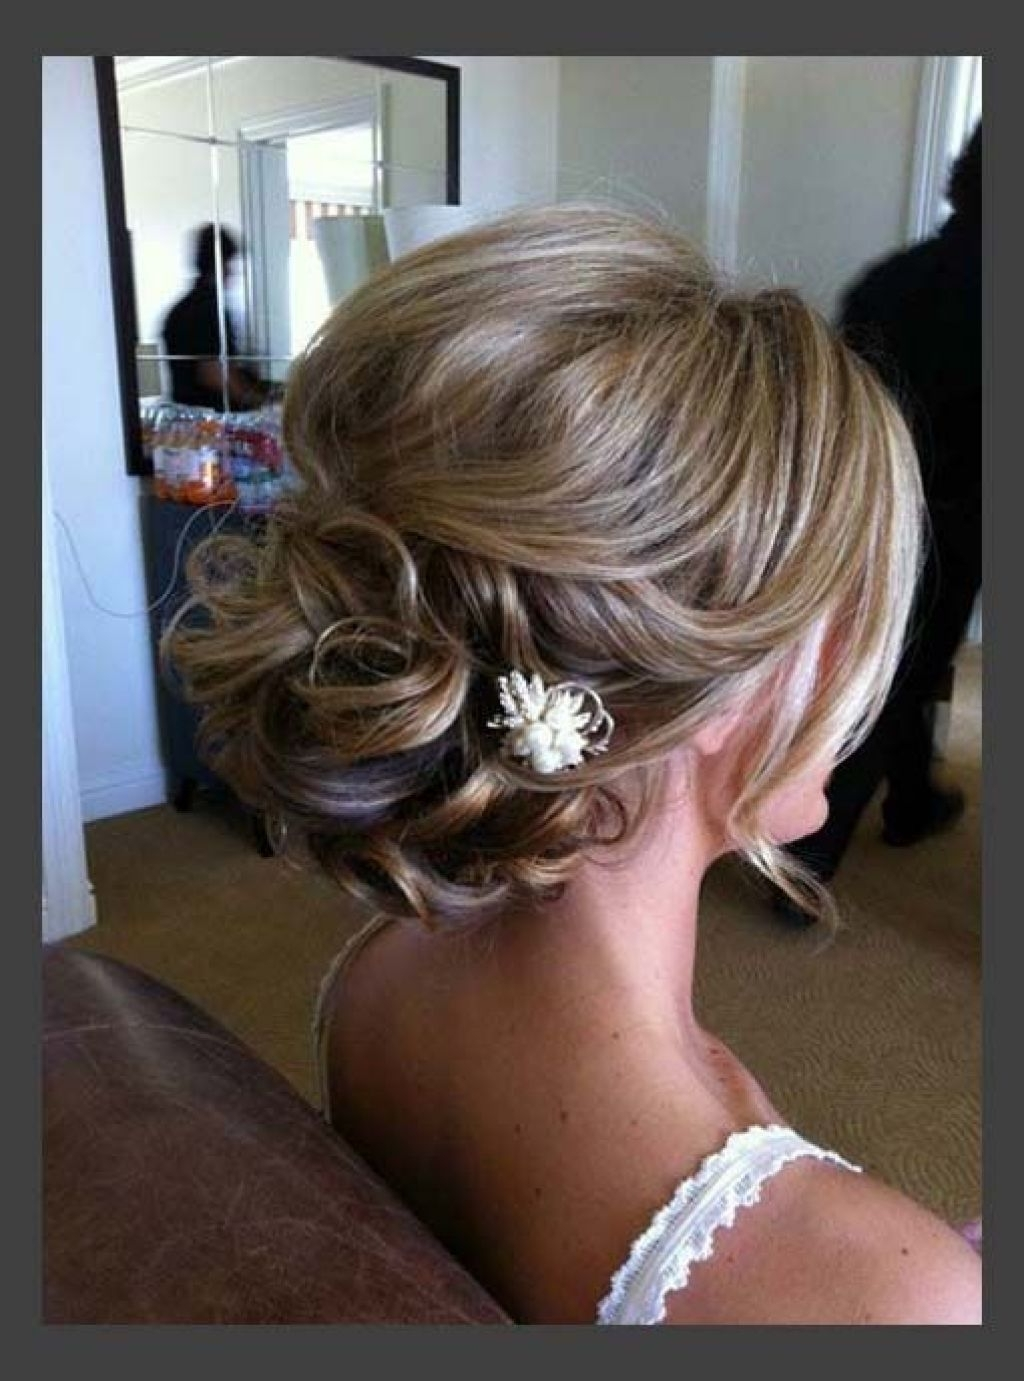 Bridesmaid Hairstyles Medium Length Hair – Hairstyle For Women & Man With 2017 Modern Wedding Hairstyles For Medium Length Hair (View 2 of 15)